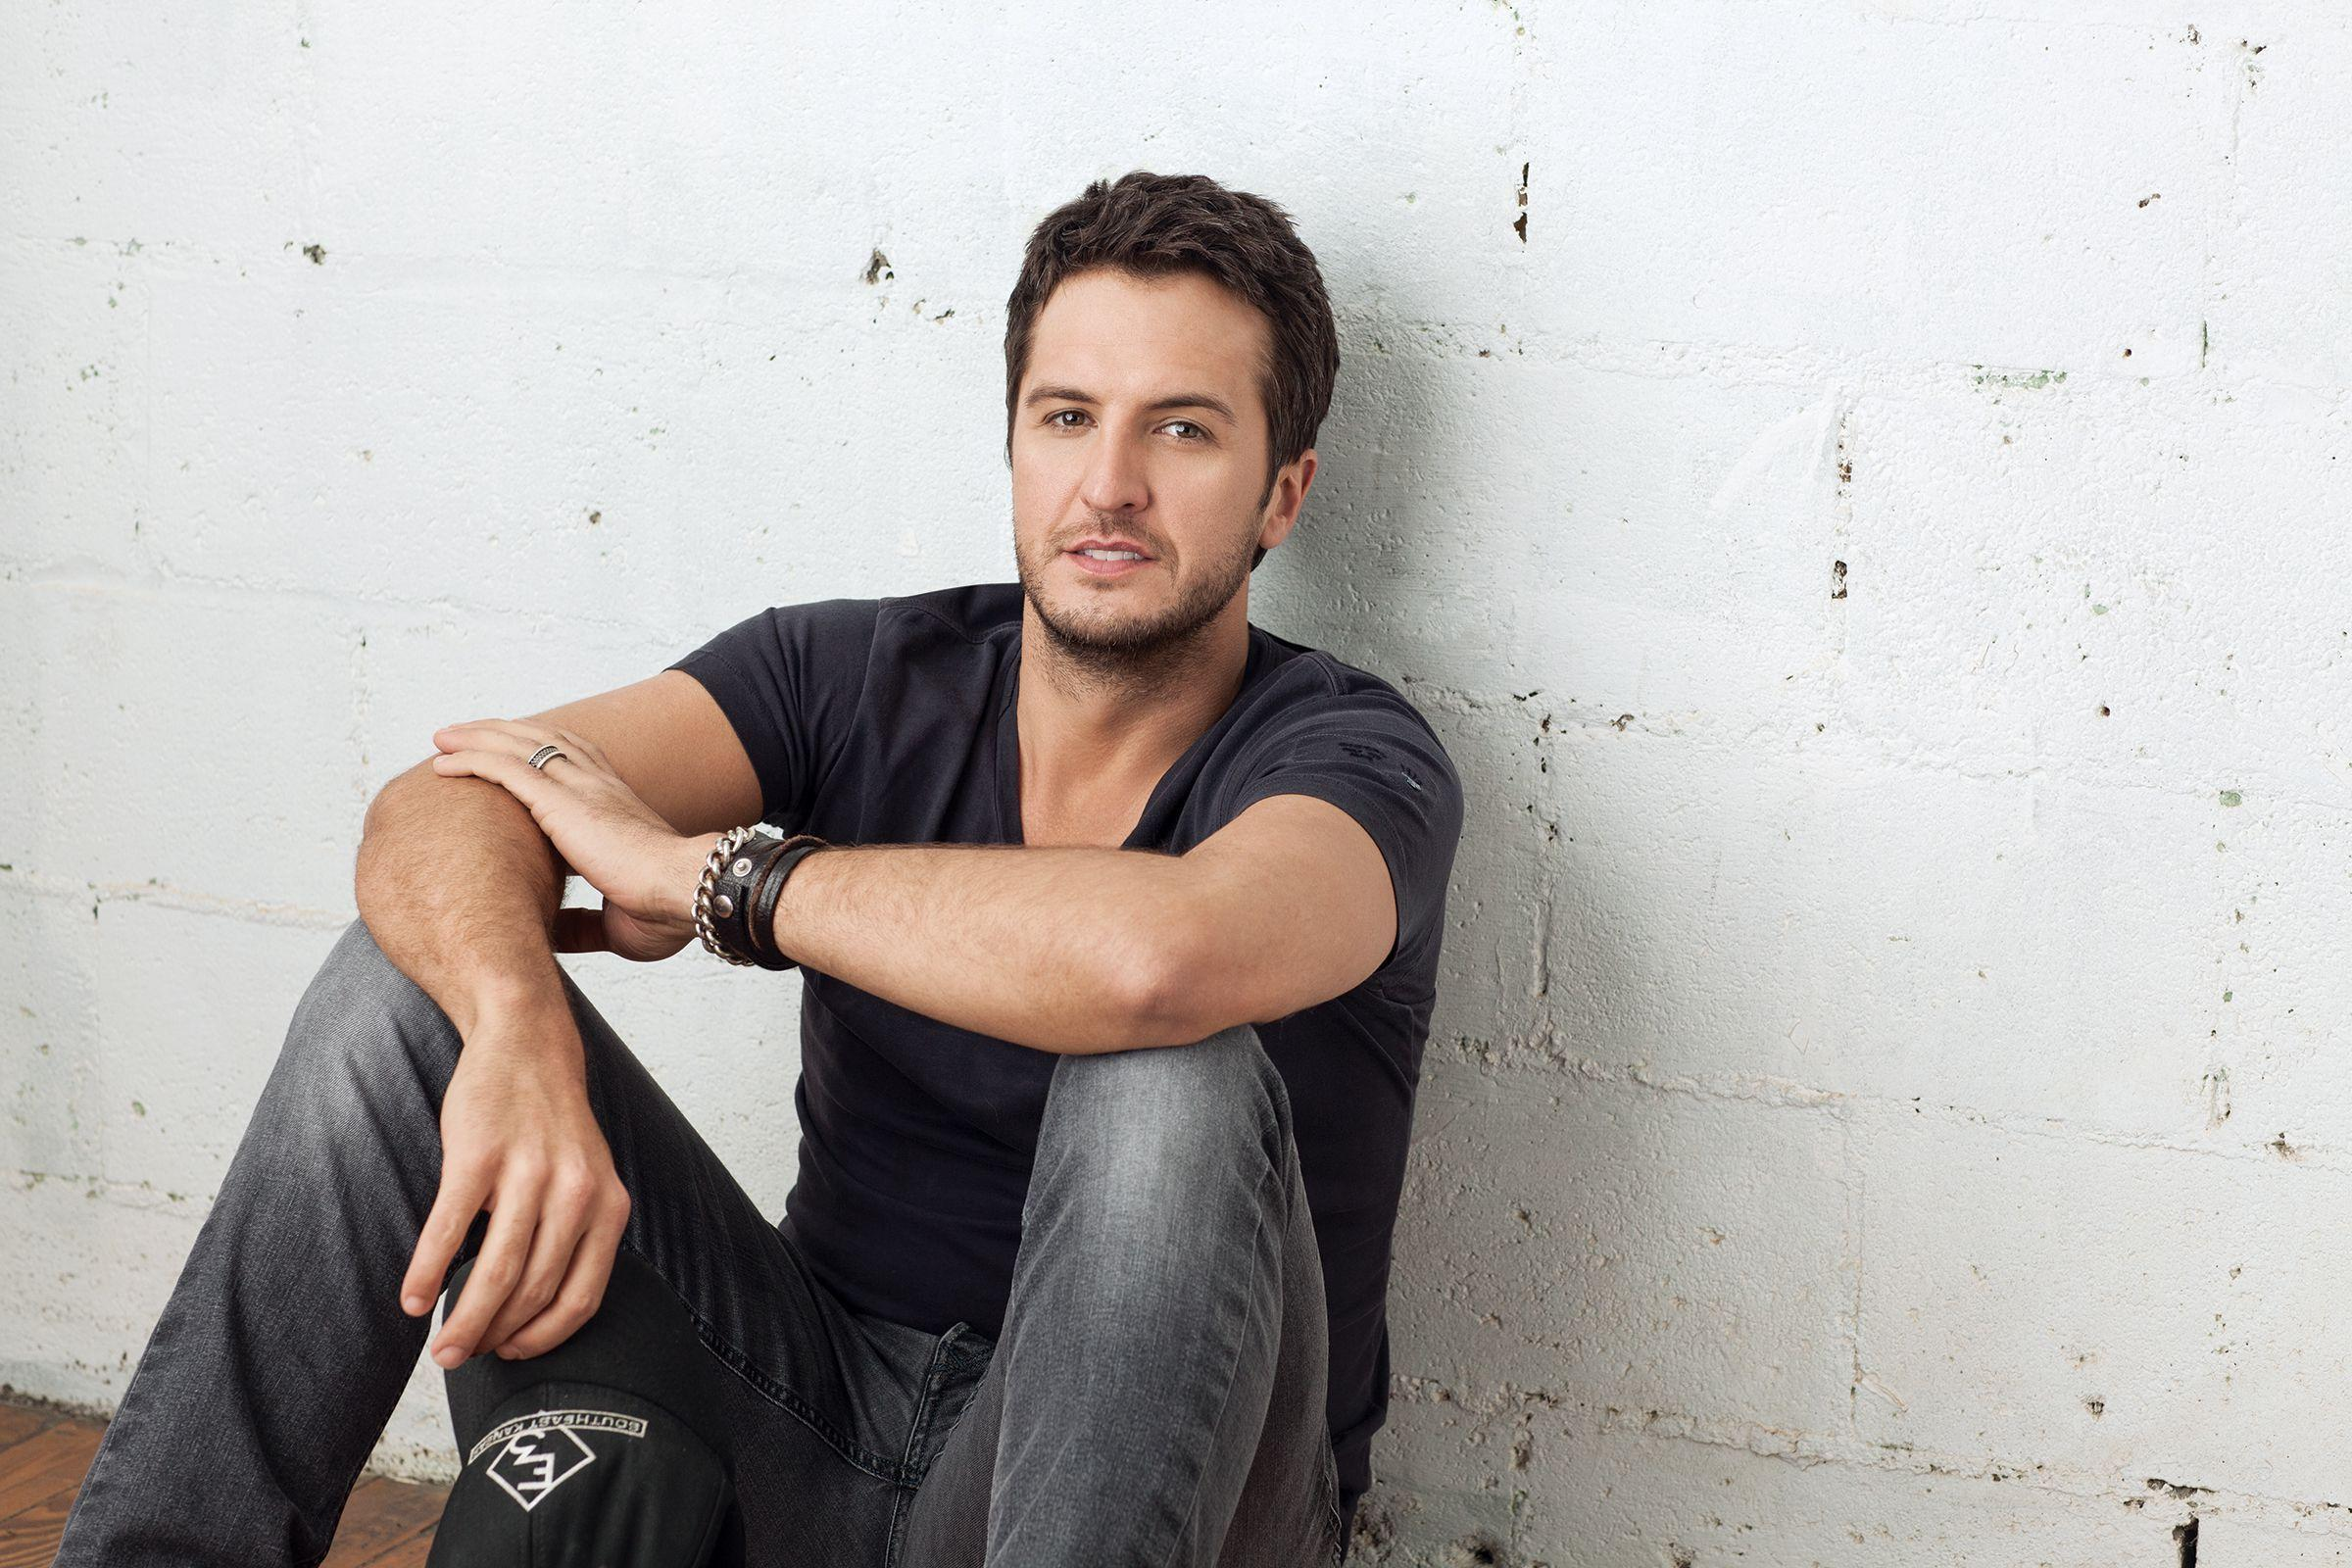 luke bryan wallpapers